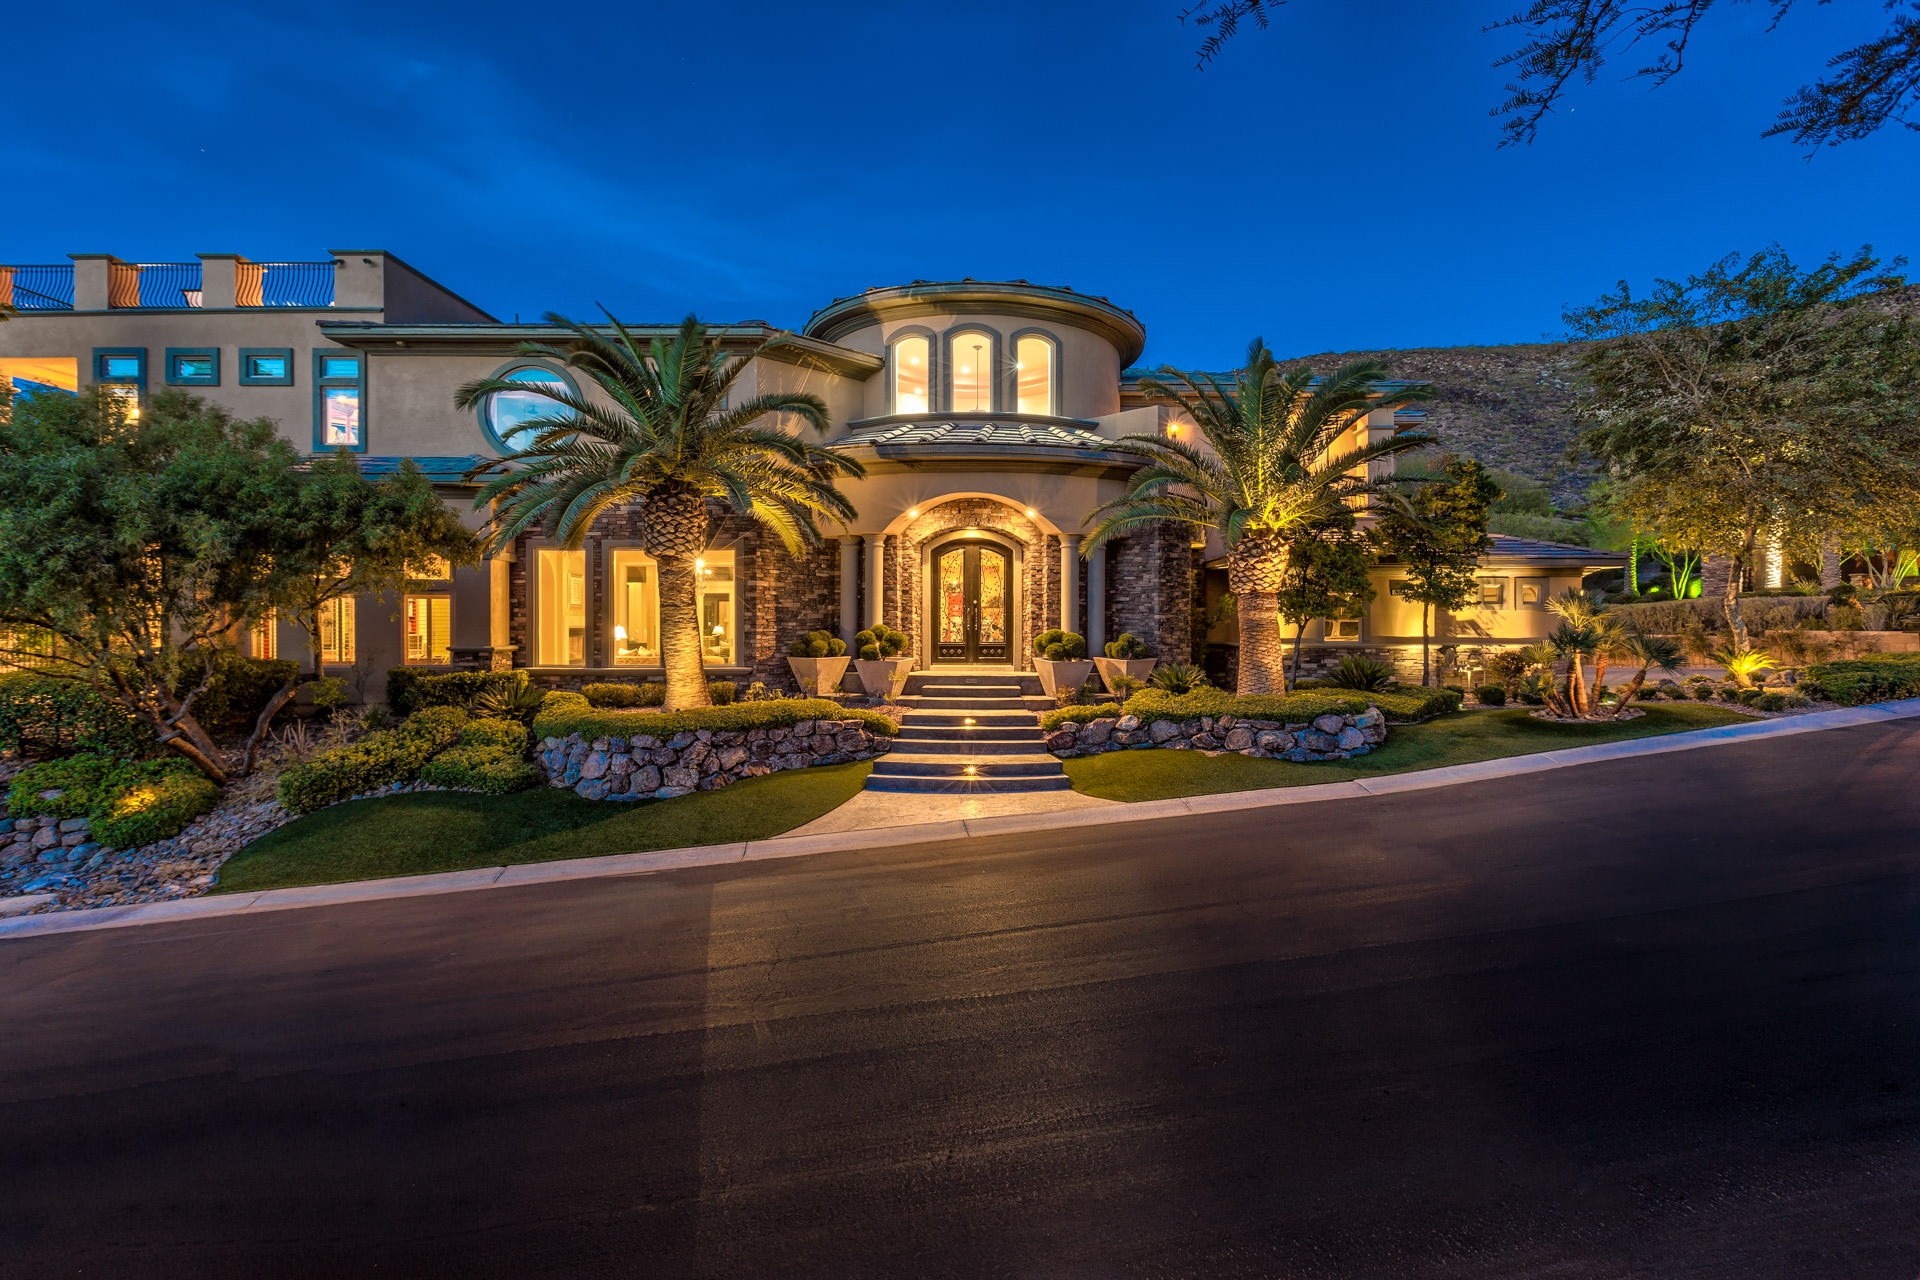 Million Dollar Homes In Las Vegas For Sale  $1m $3m